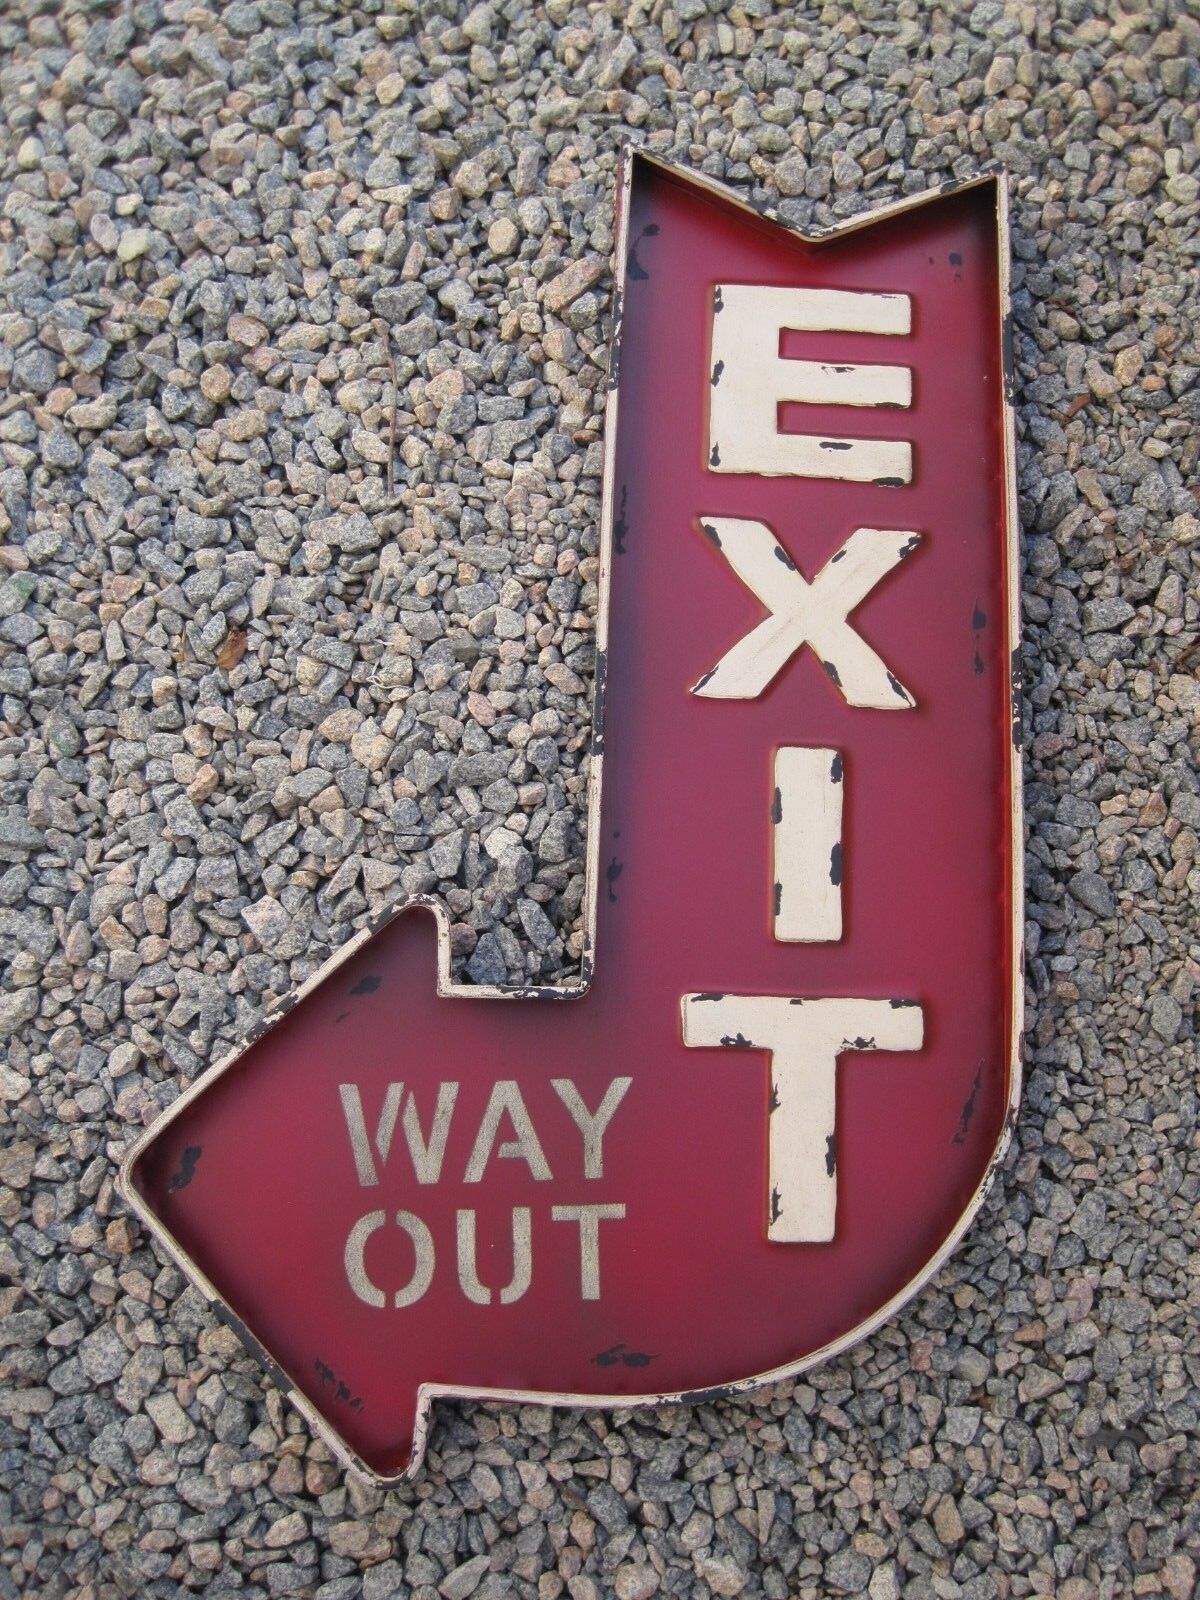 Distressed rouge Exit Way Out Metal Wall Sign Antique Vintage Home Decor Display